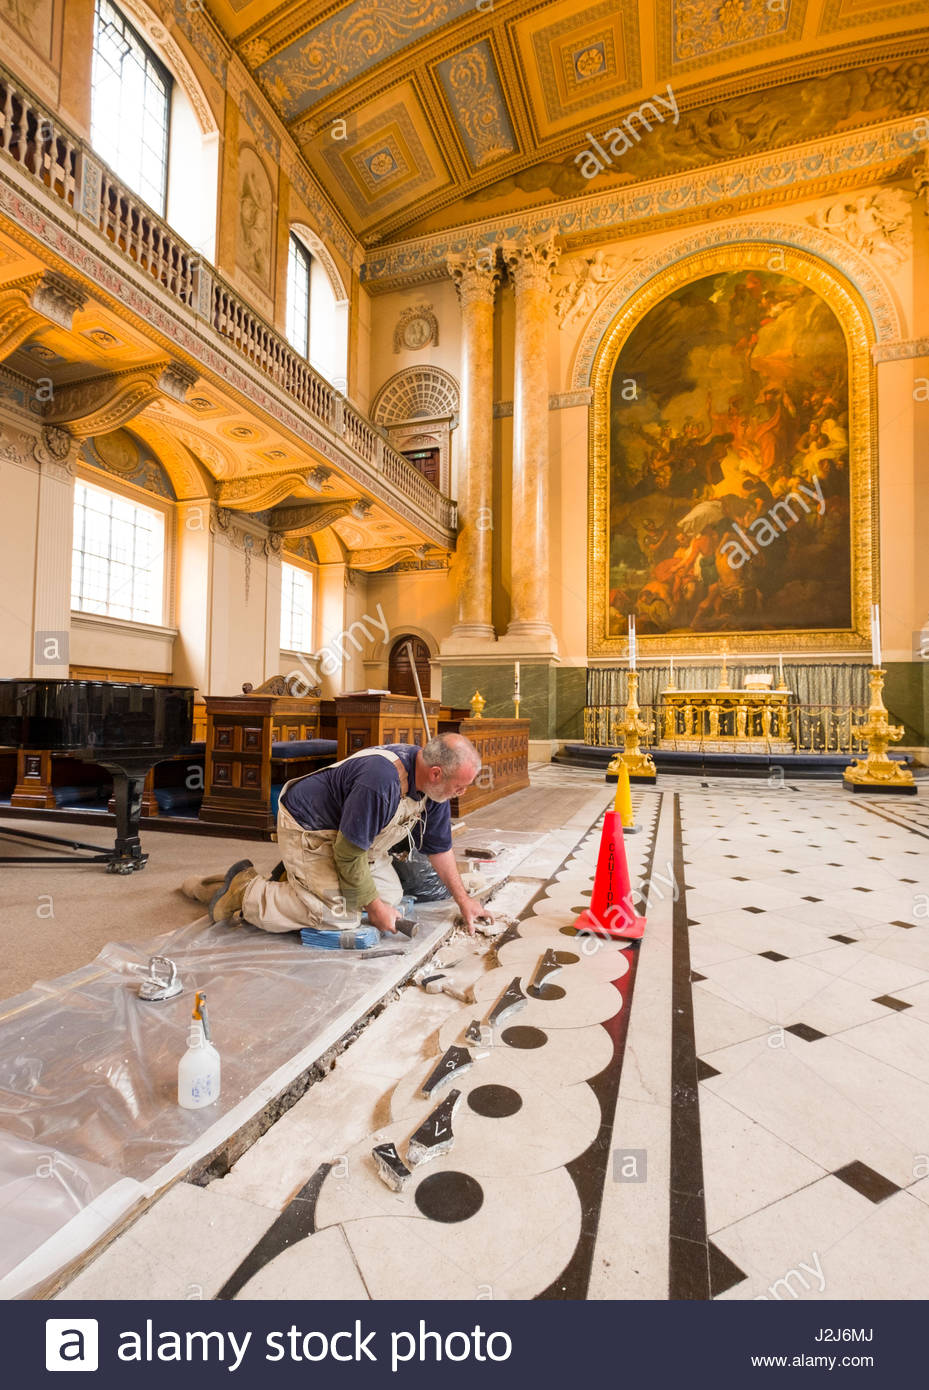 Man on knees working on ornate floor tiles inside the chapel of st man on knees working on ornate floor tiles inside the chapel of st peter and st paul at the old royal naval college greenwich london england unite dailygadgetfo Images